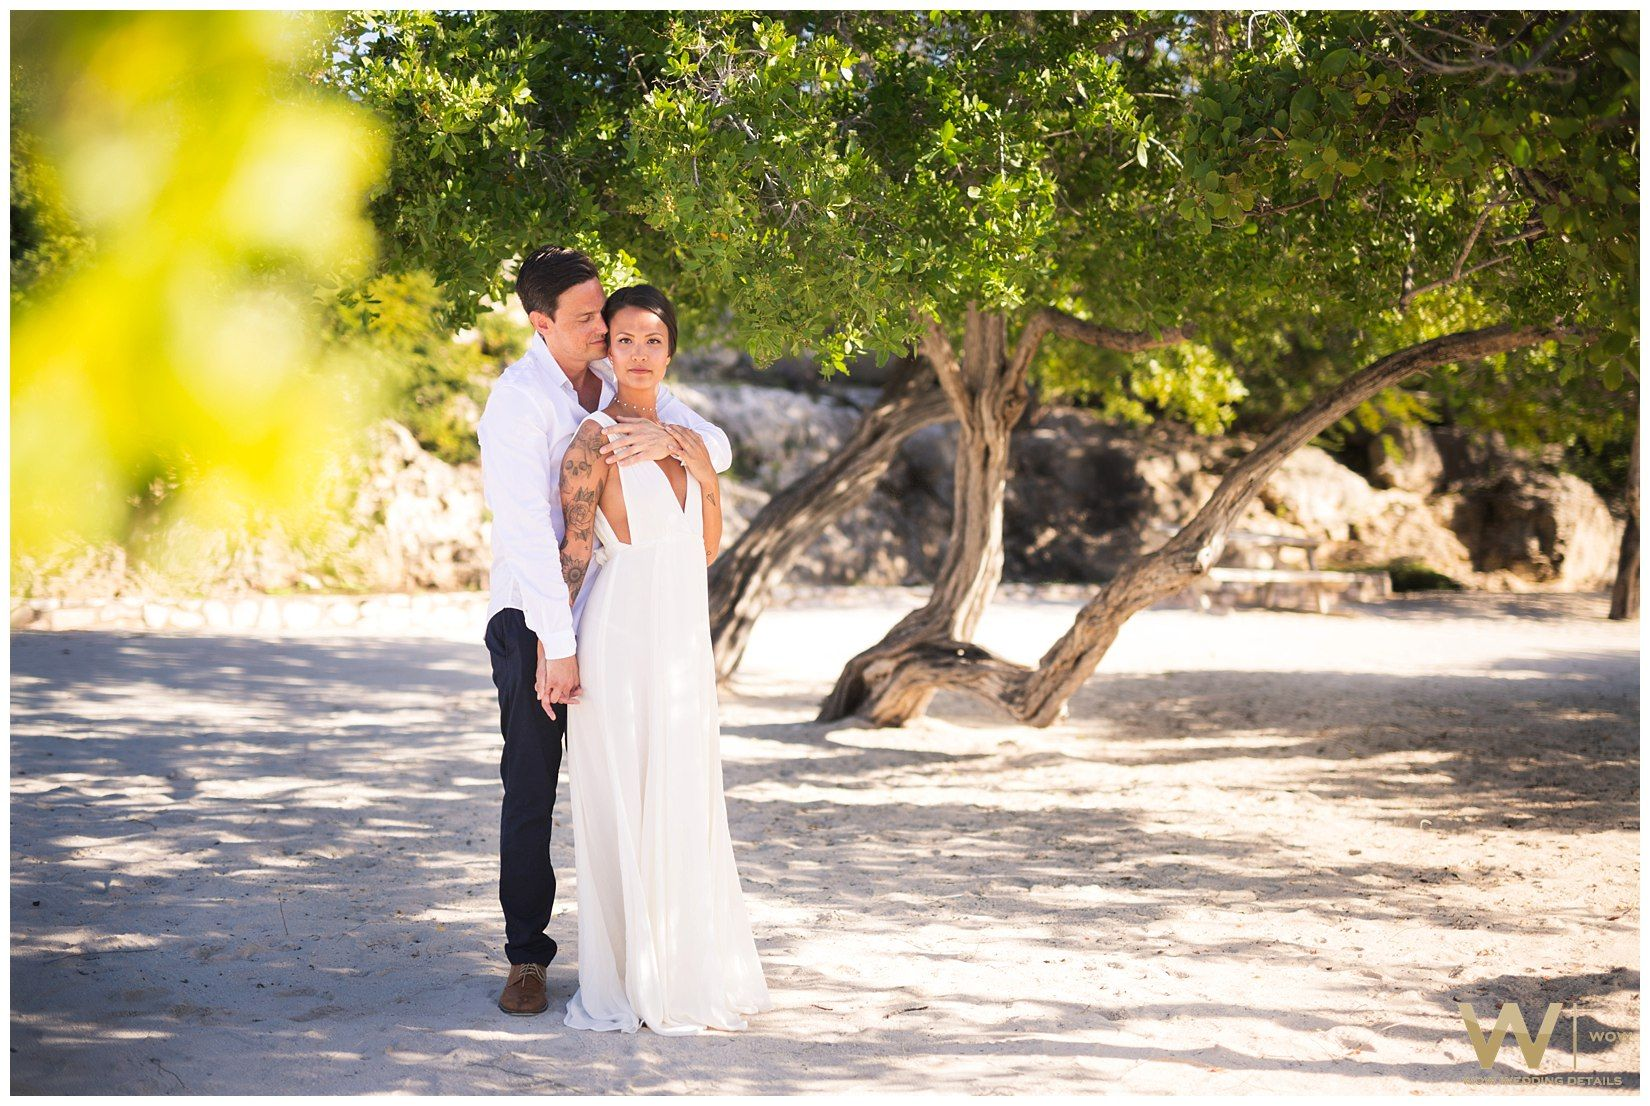 Lauren Travis Canada Curacao Destination Wedding Elopement Tropical Beach Santa Barbara Golf Resort Photography By Wow